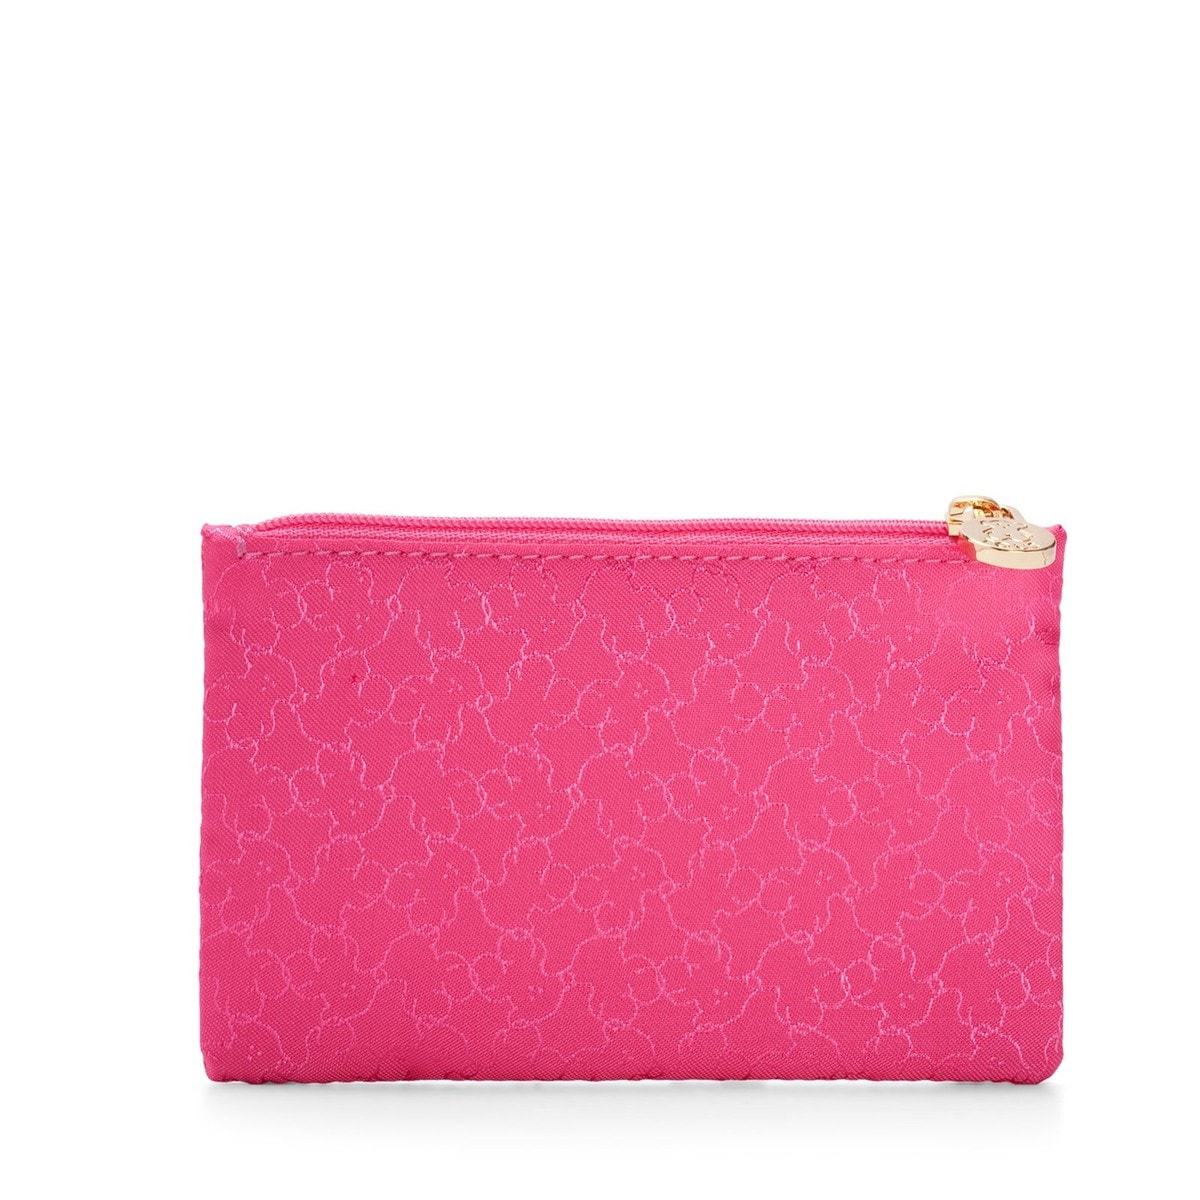 Small fuchsia Nylon Clasica Toiletry bag